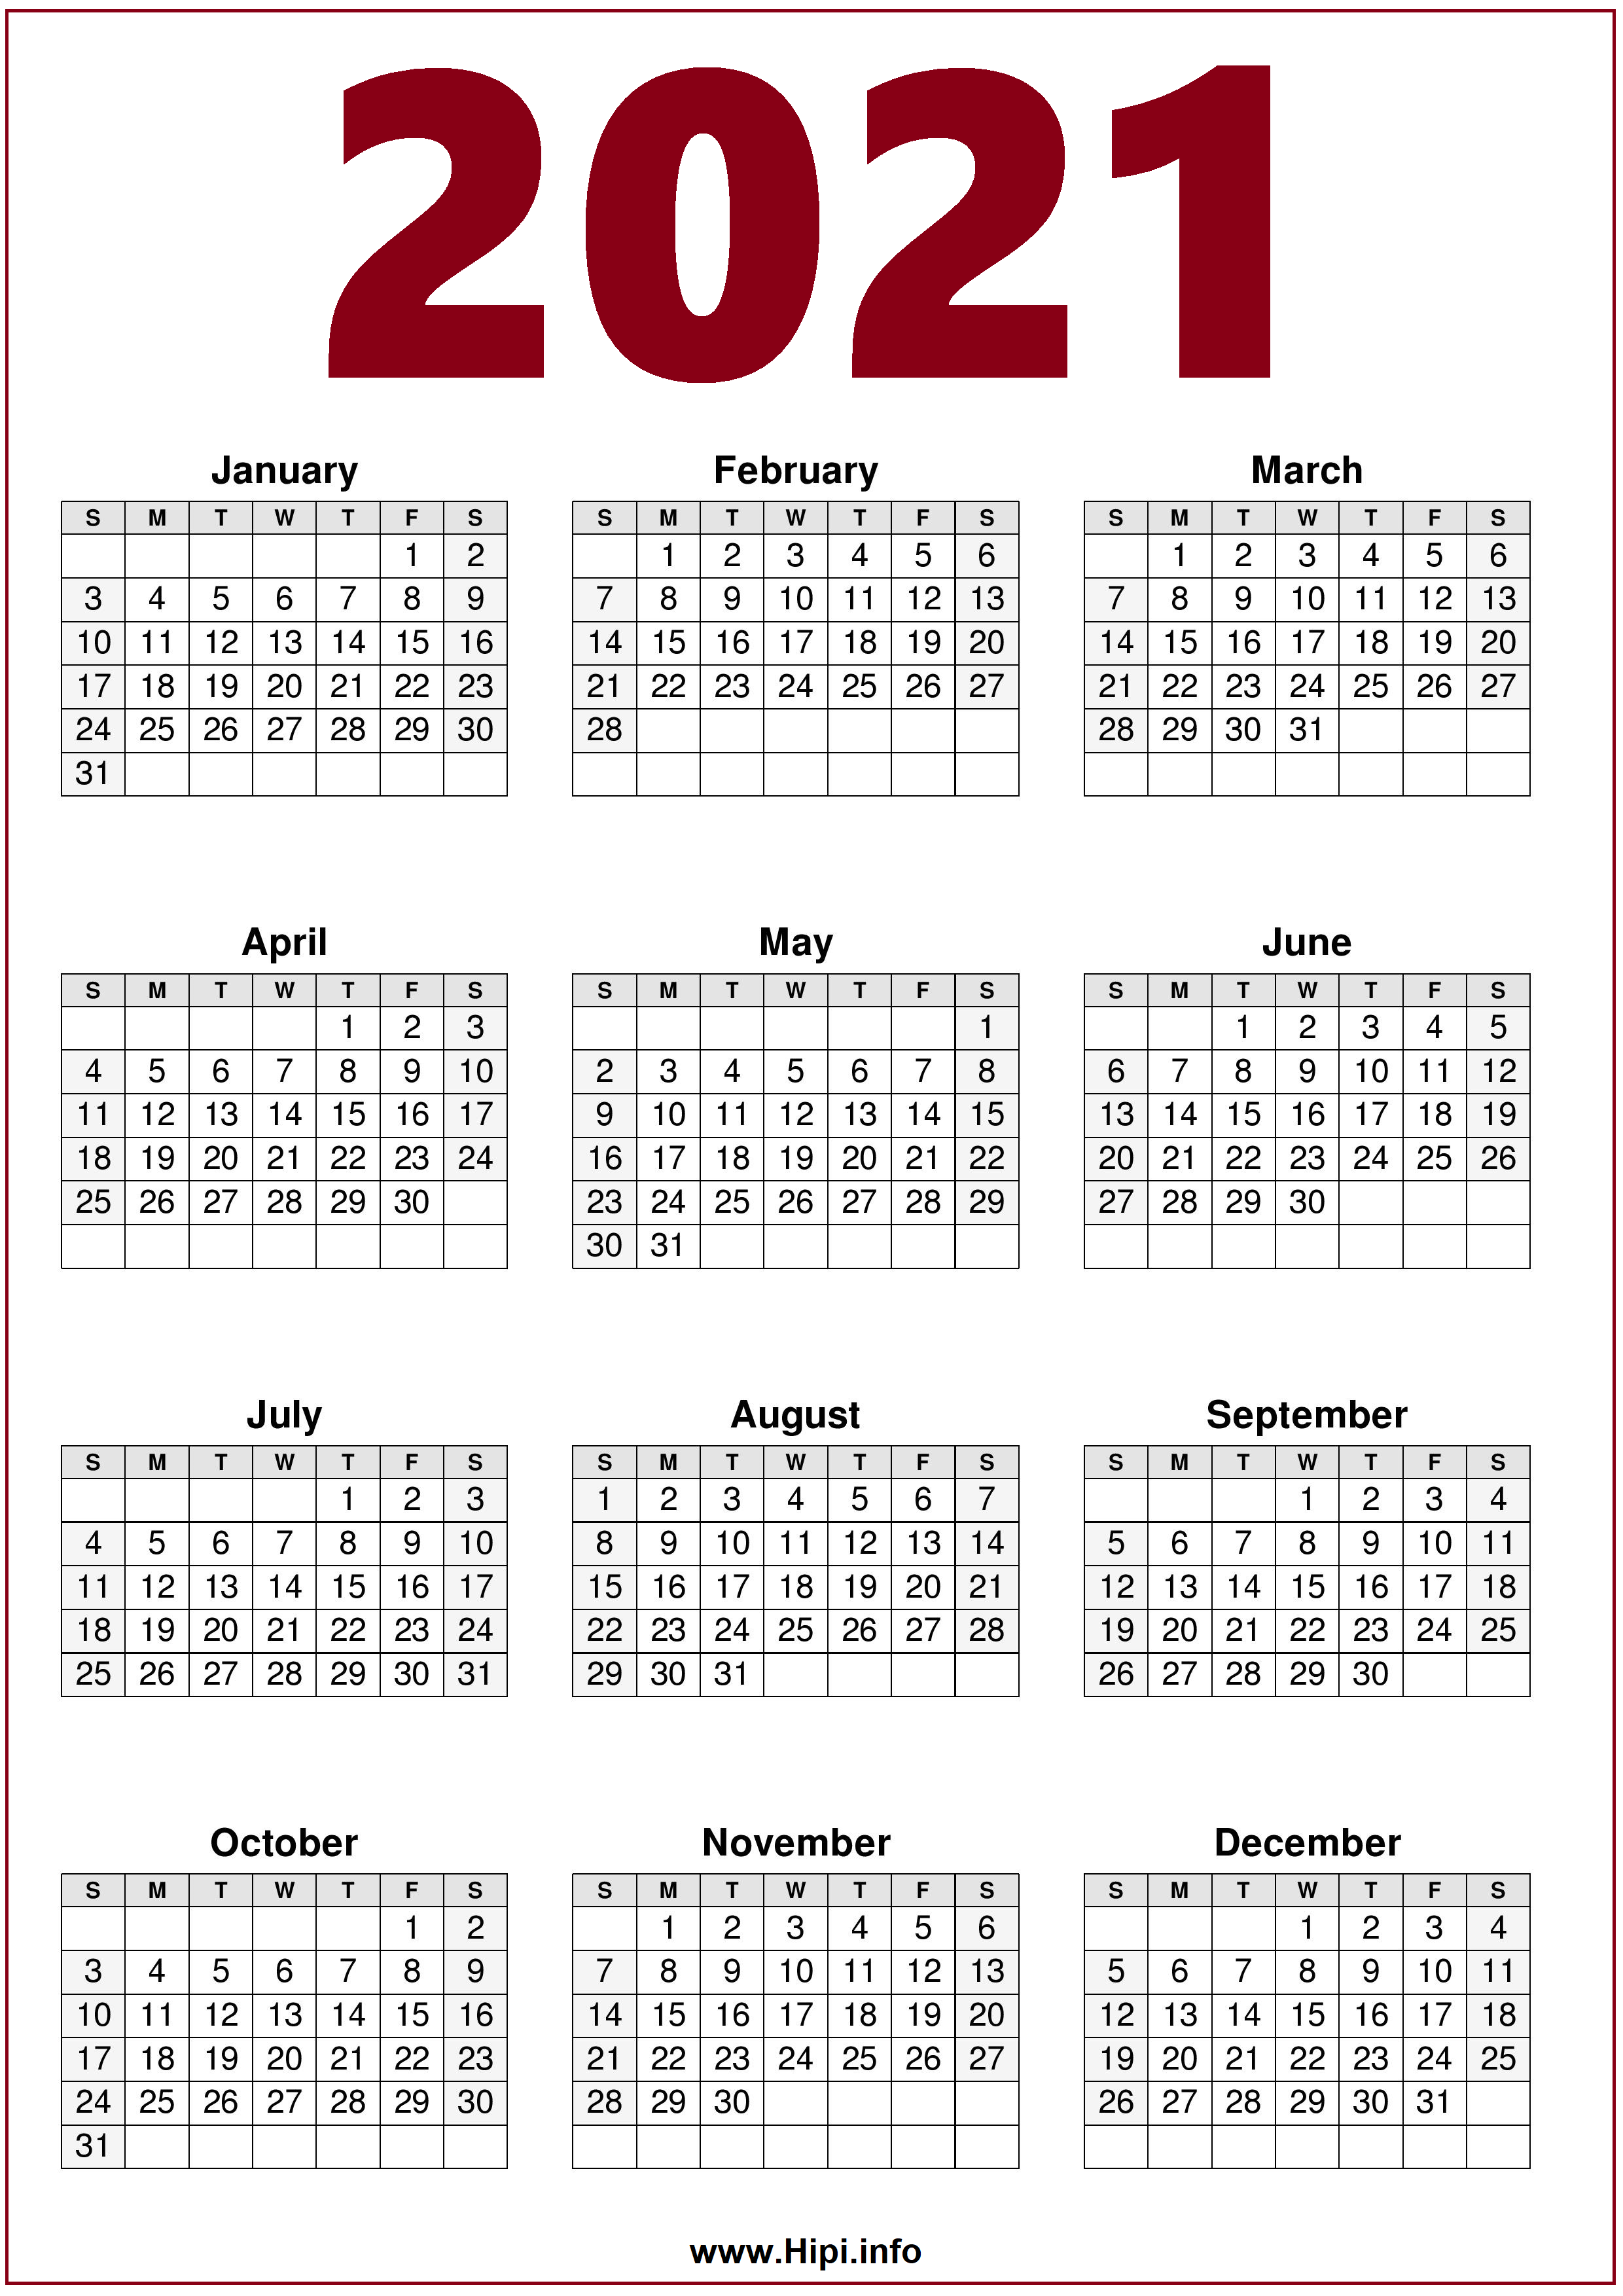 2021 Calendar Printable One Page Free   Free Download   Hipi.info